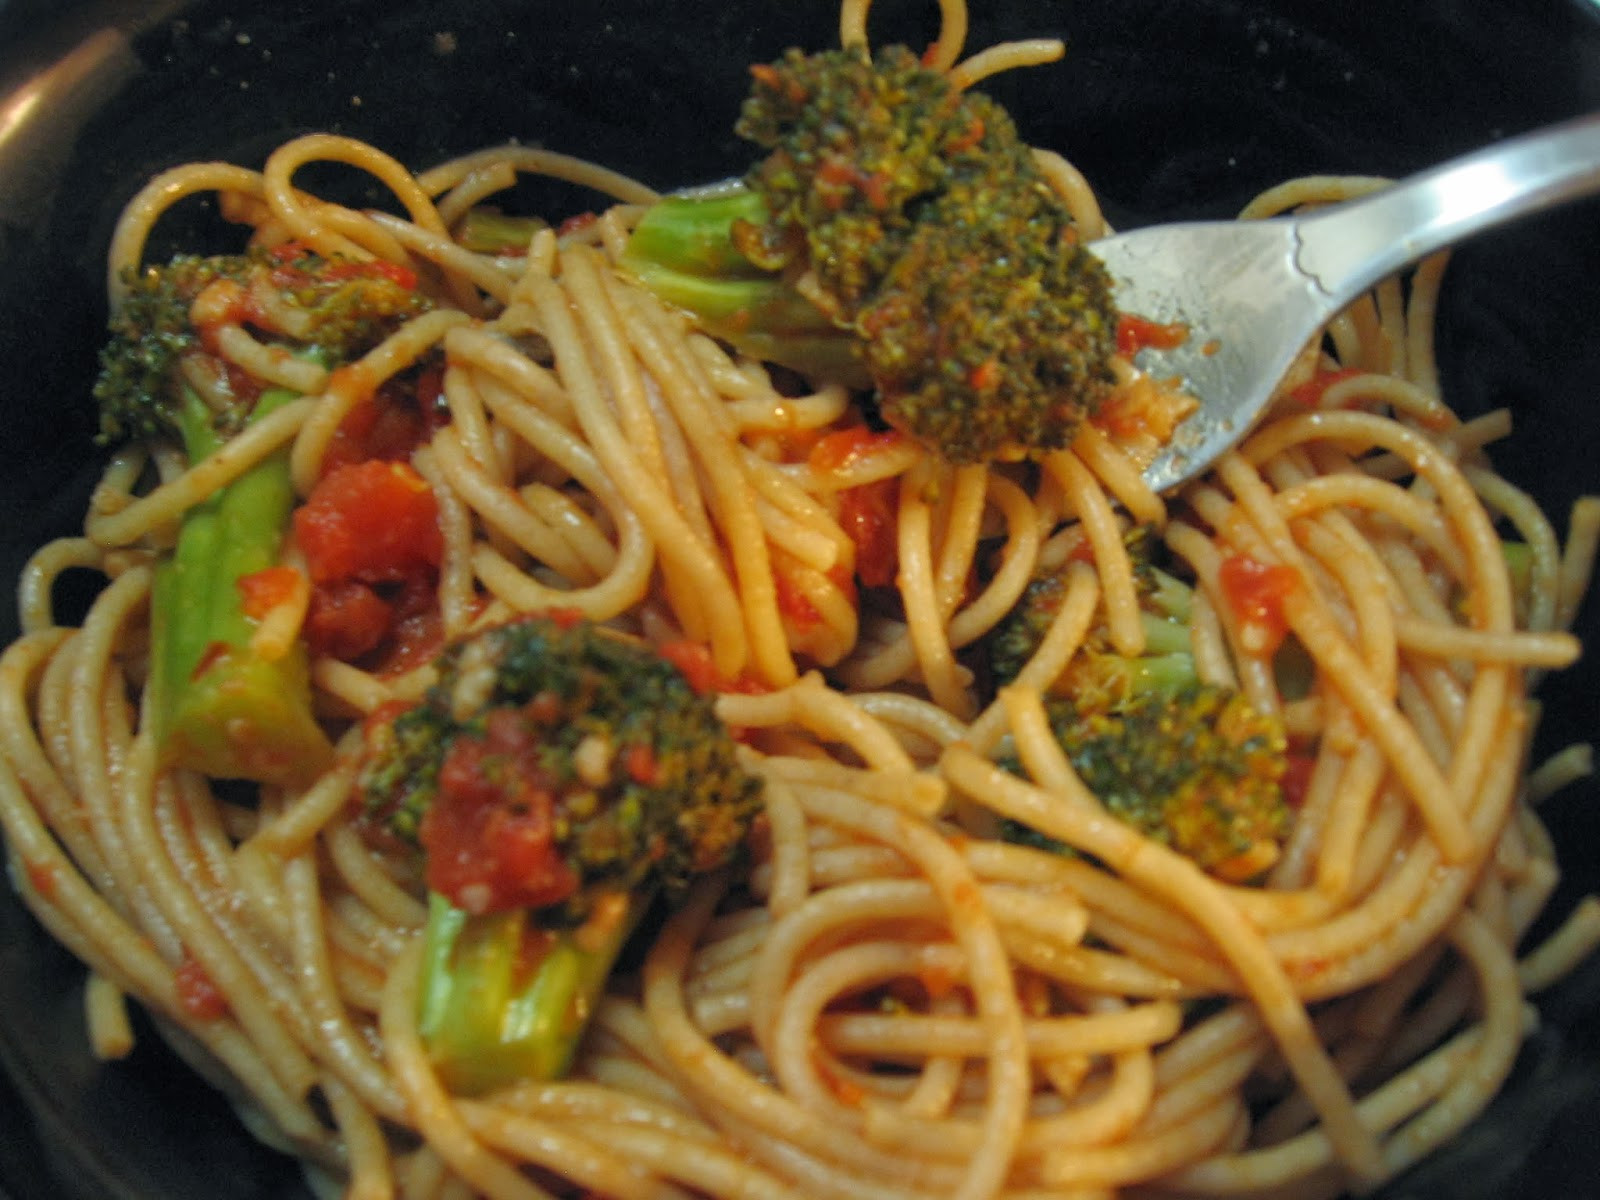 Pasta With Broccoli  Deceptively Healthy Spaghetti with Broccoli and Tomato Sauce